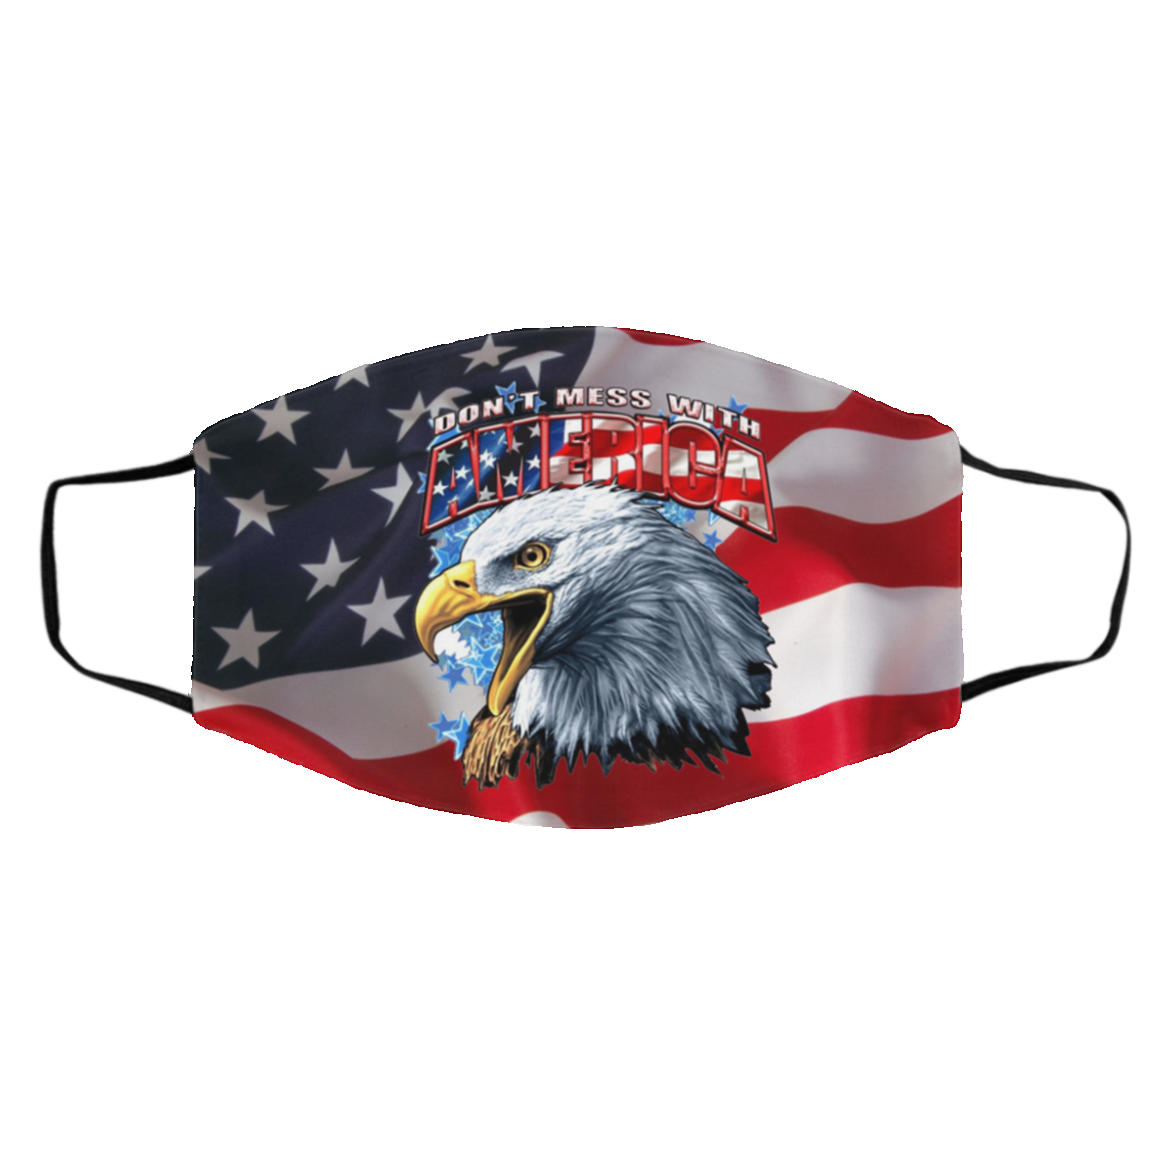 Ba-ld E-agle Don't Mess With America Filter Face Mask